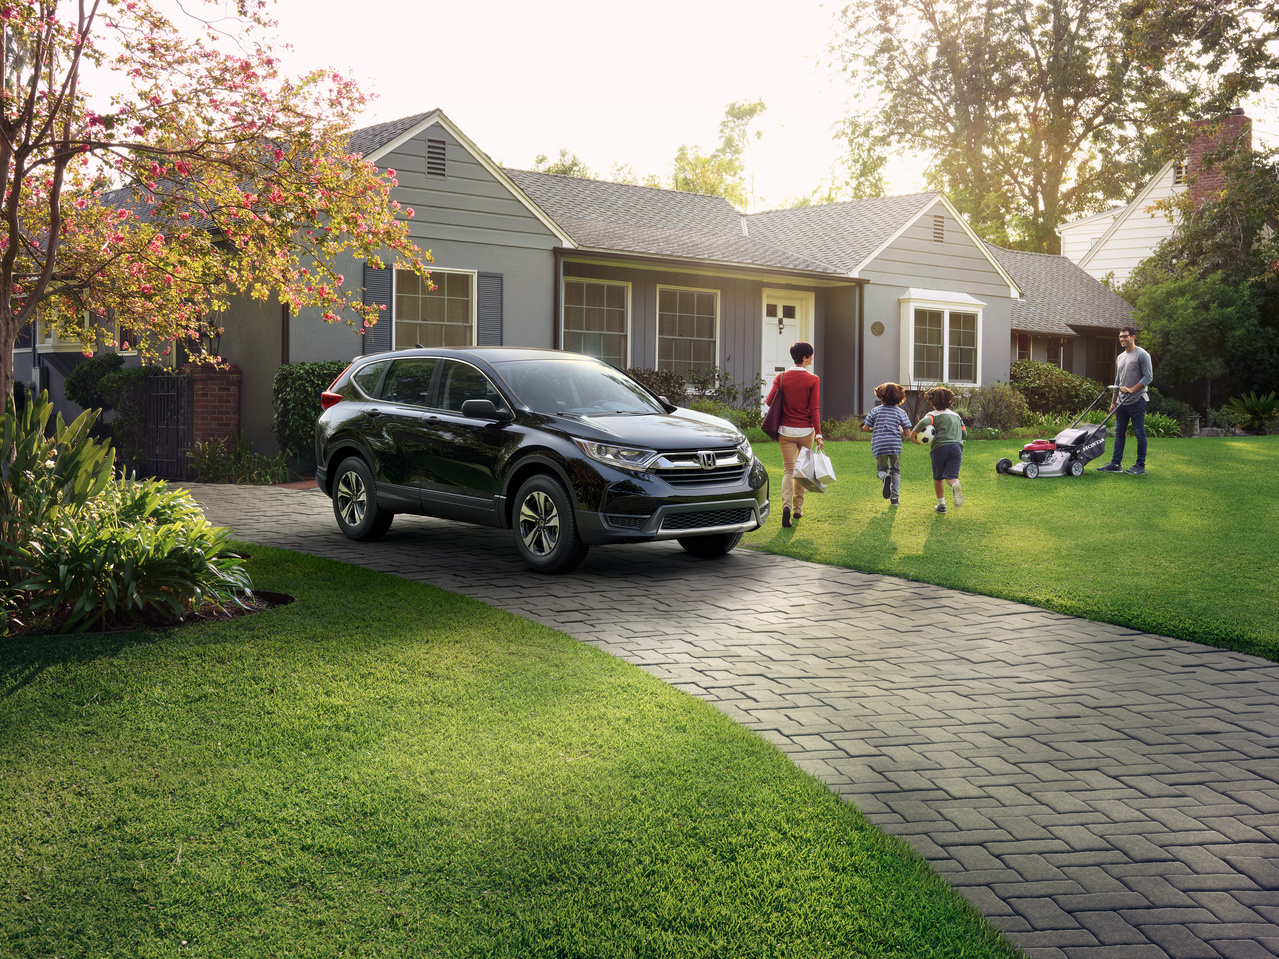 New Honda CR-V SUV